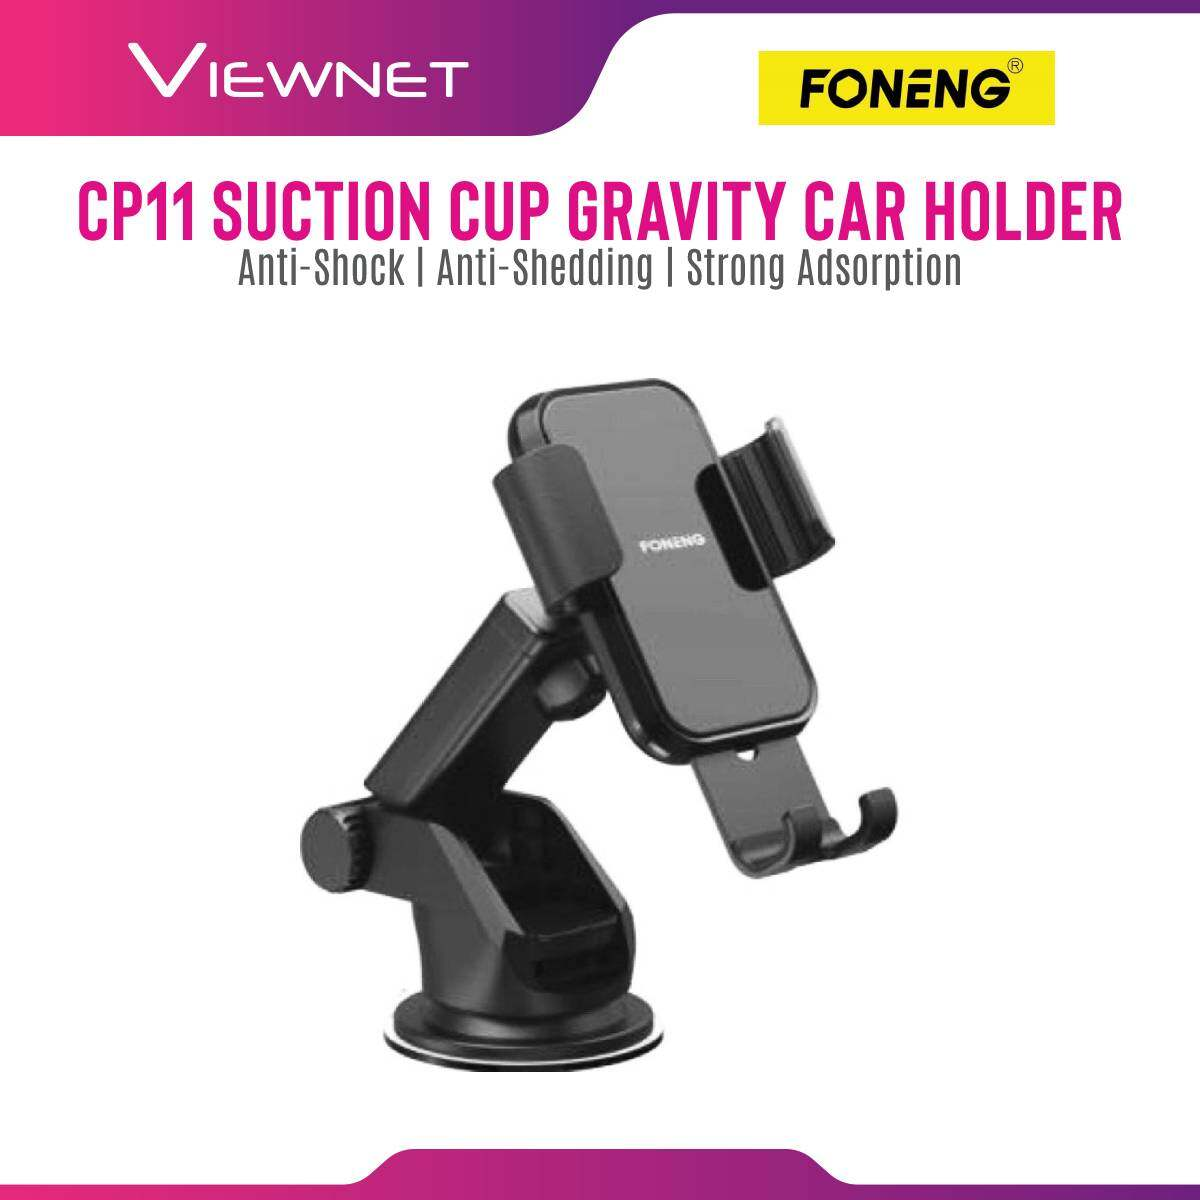 FONENG CP11 Suction Cup Gravity Car Mount Holder